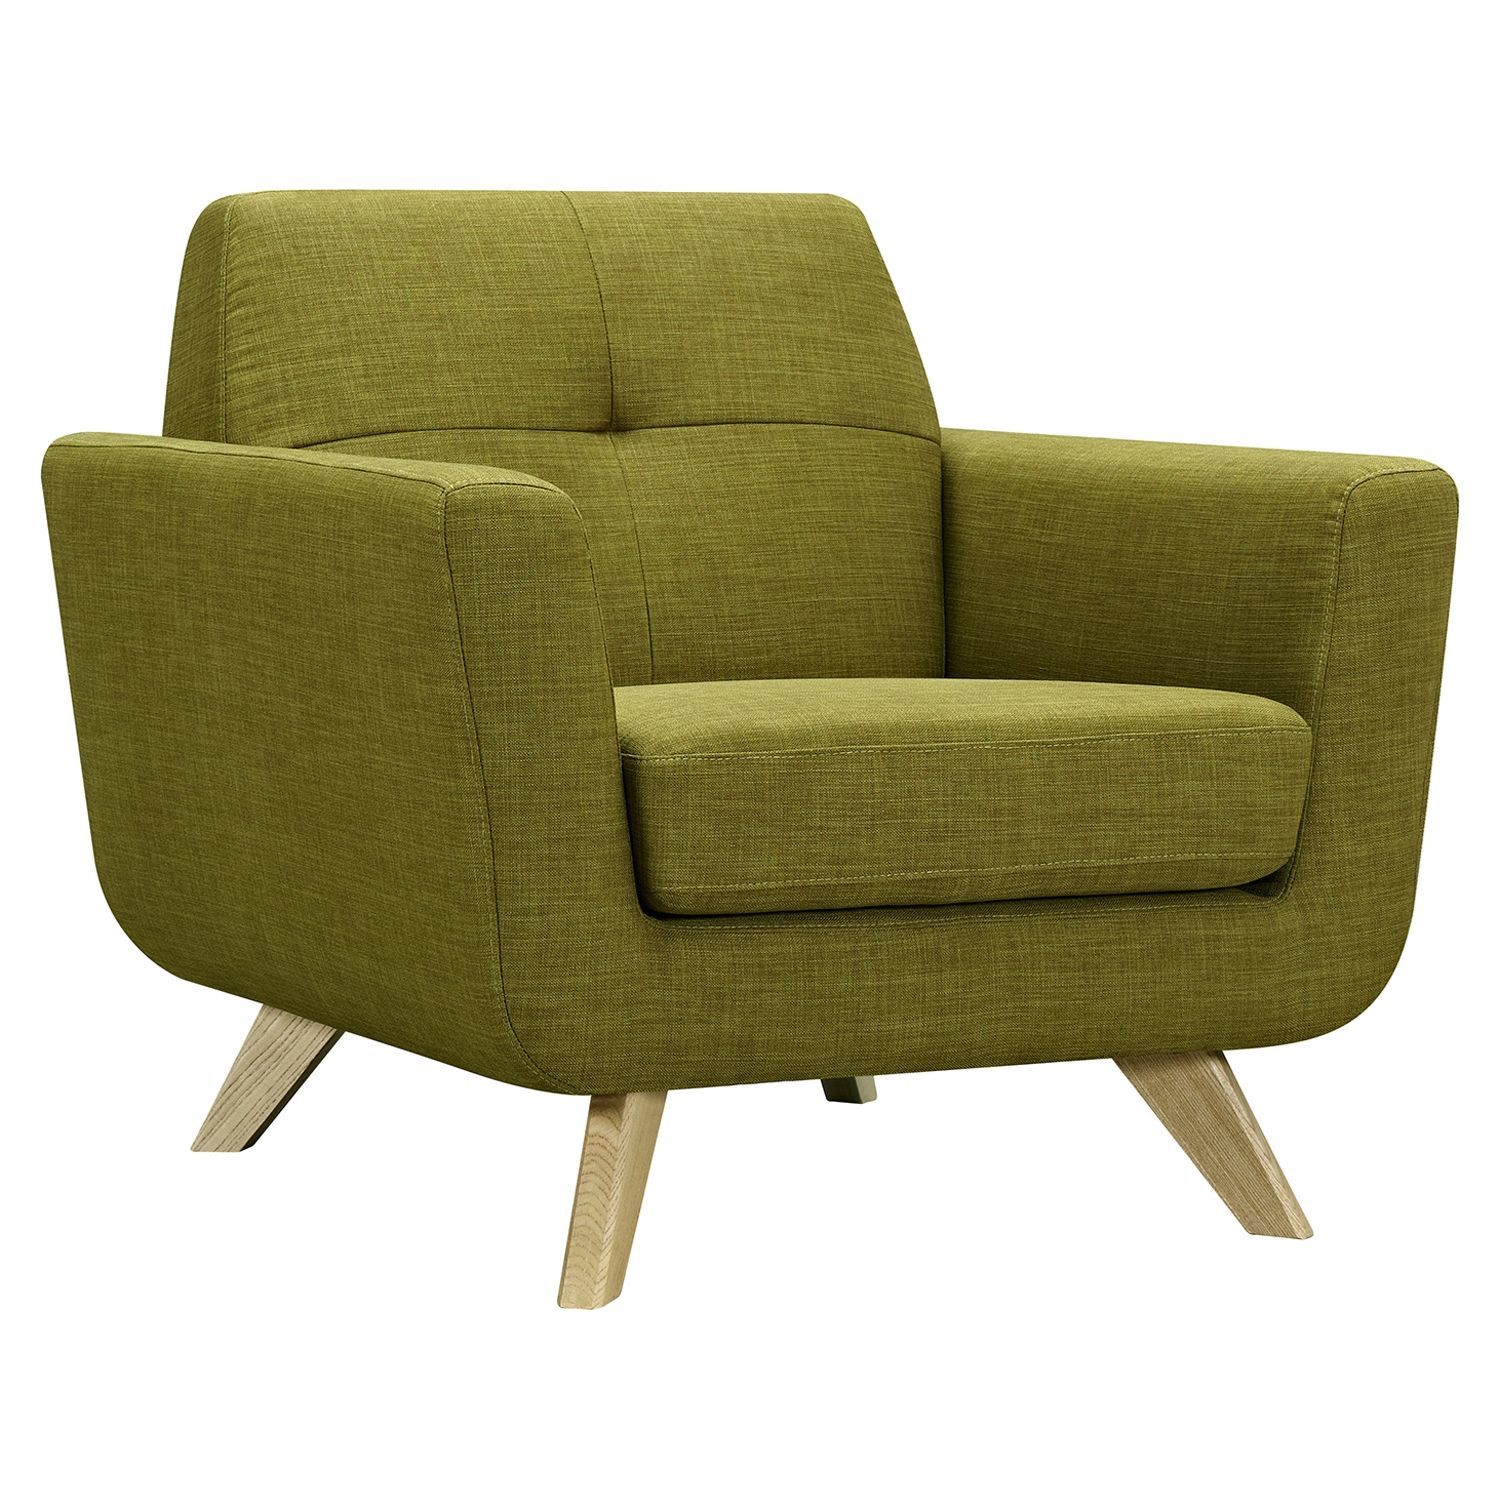 ... Dania Furniture Reviews By Dania Tufted Upholstery Armchair Avocado  Green Dcg Stores ...